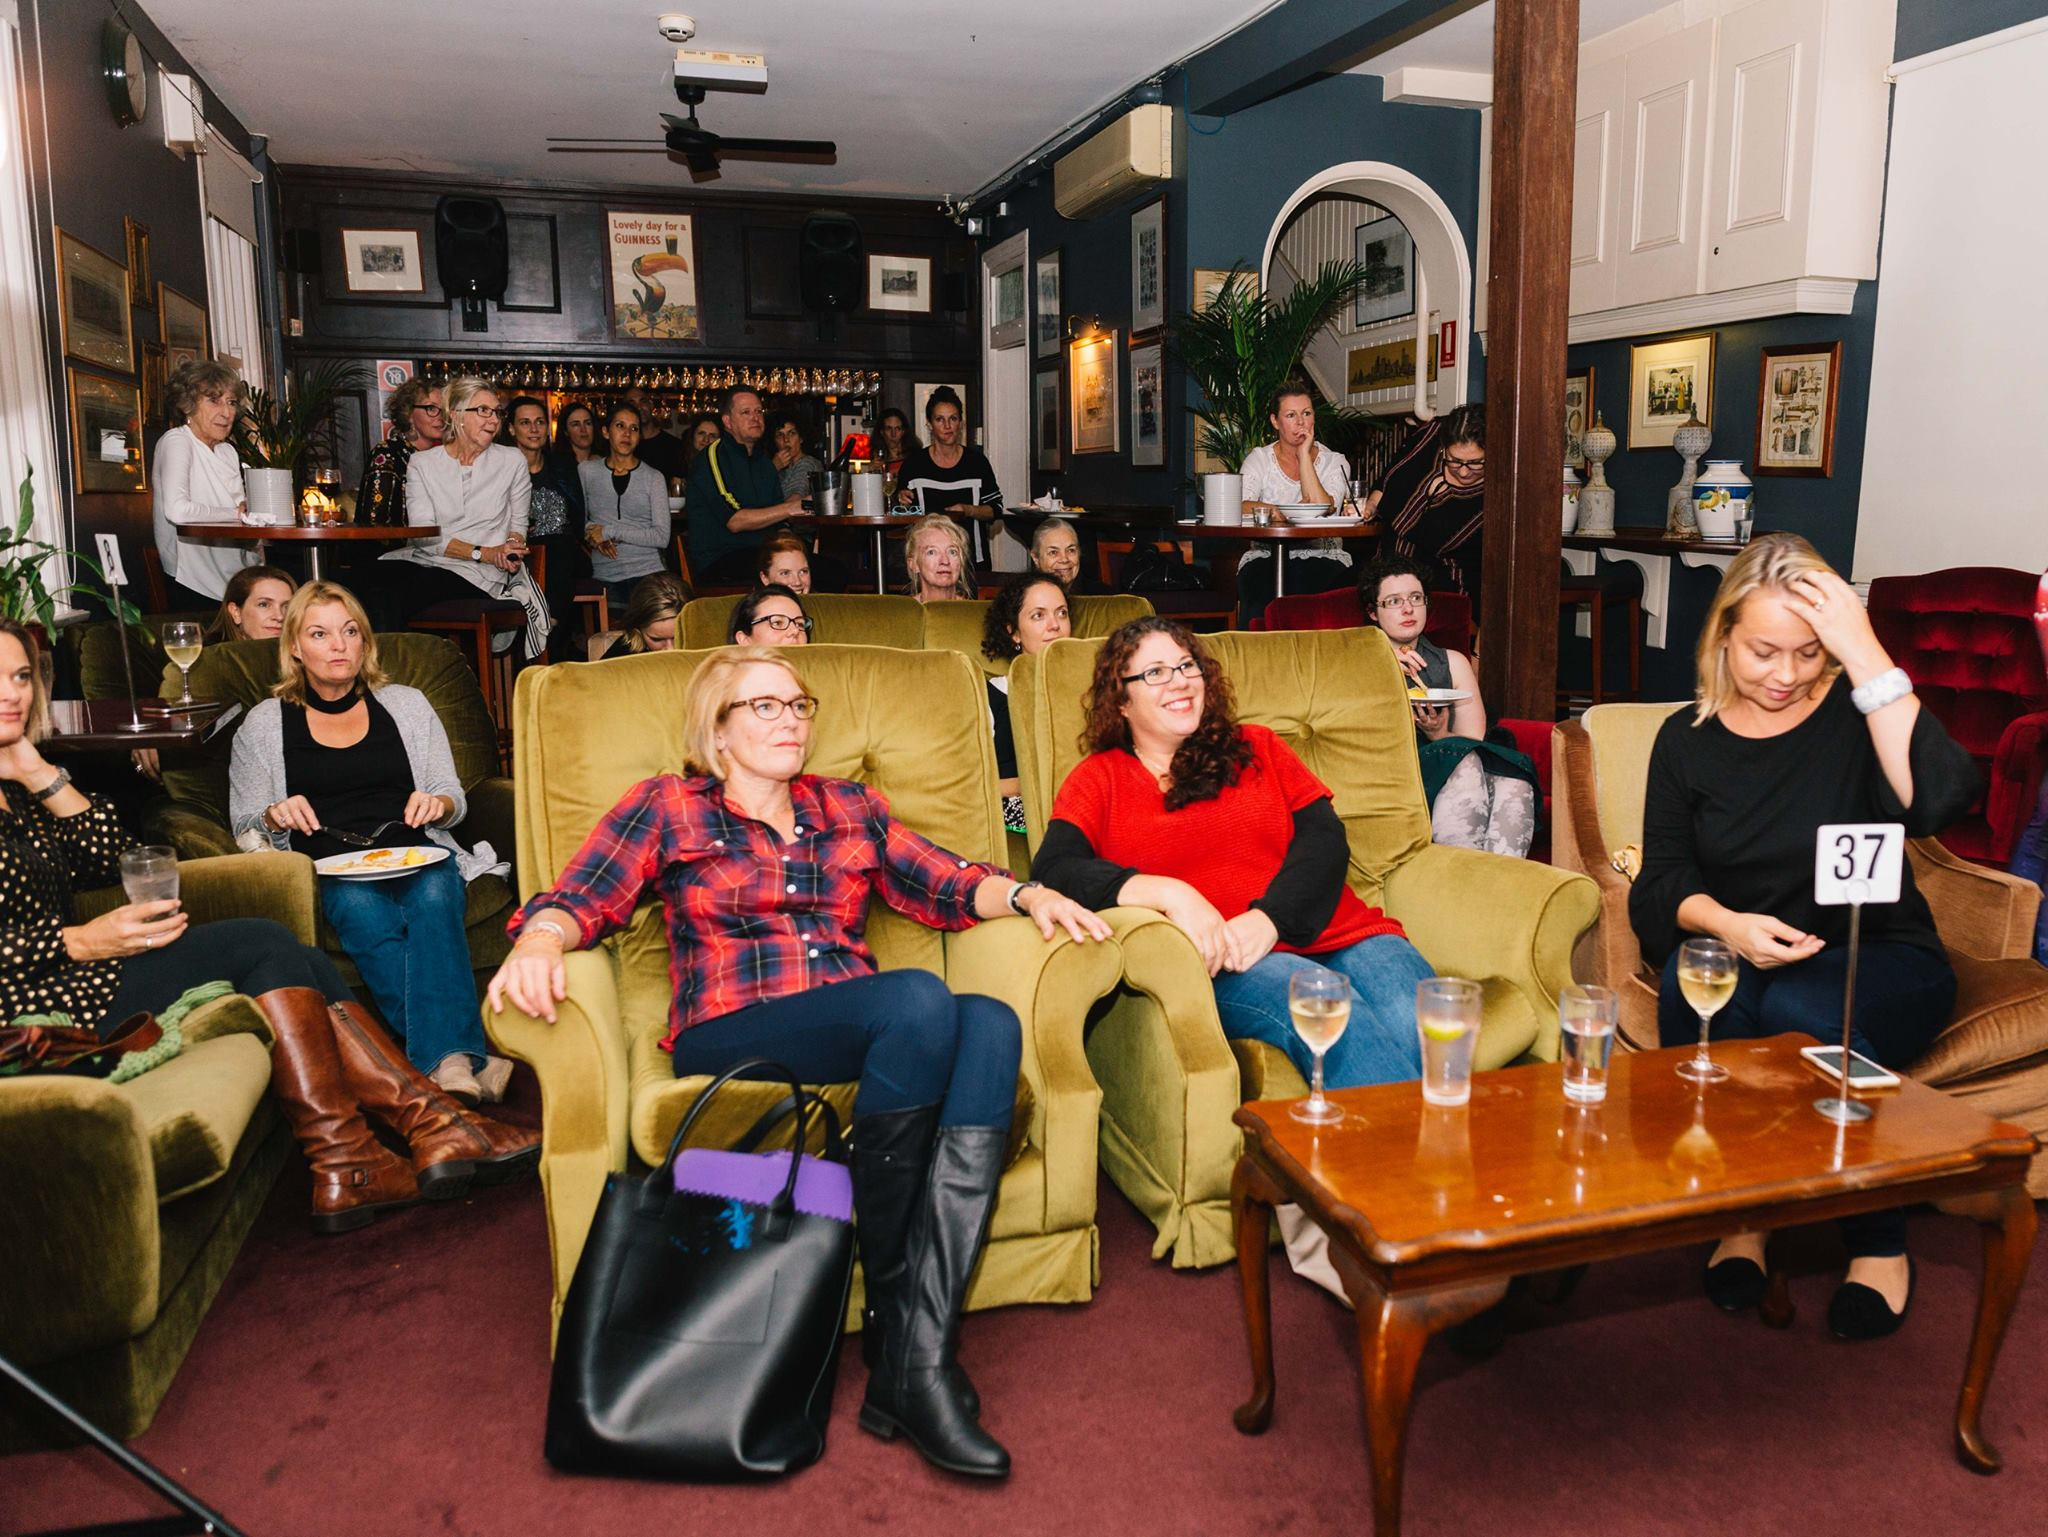 A roomful of talented creative mamas, at our Mama Creatives Evening Talk, 'Creativity, Confidence & Pushing your Comfort Zones' featuring Aura Parker, illustrator, designer & children's book author of 'Twig'.